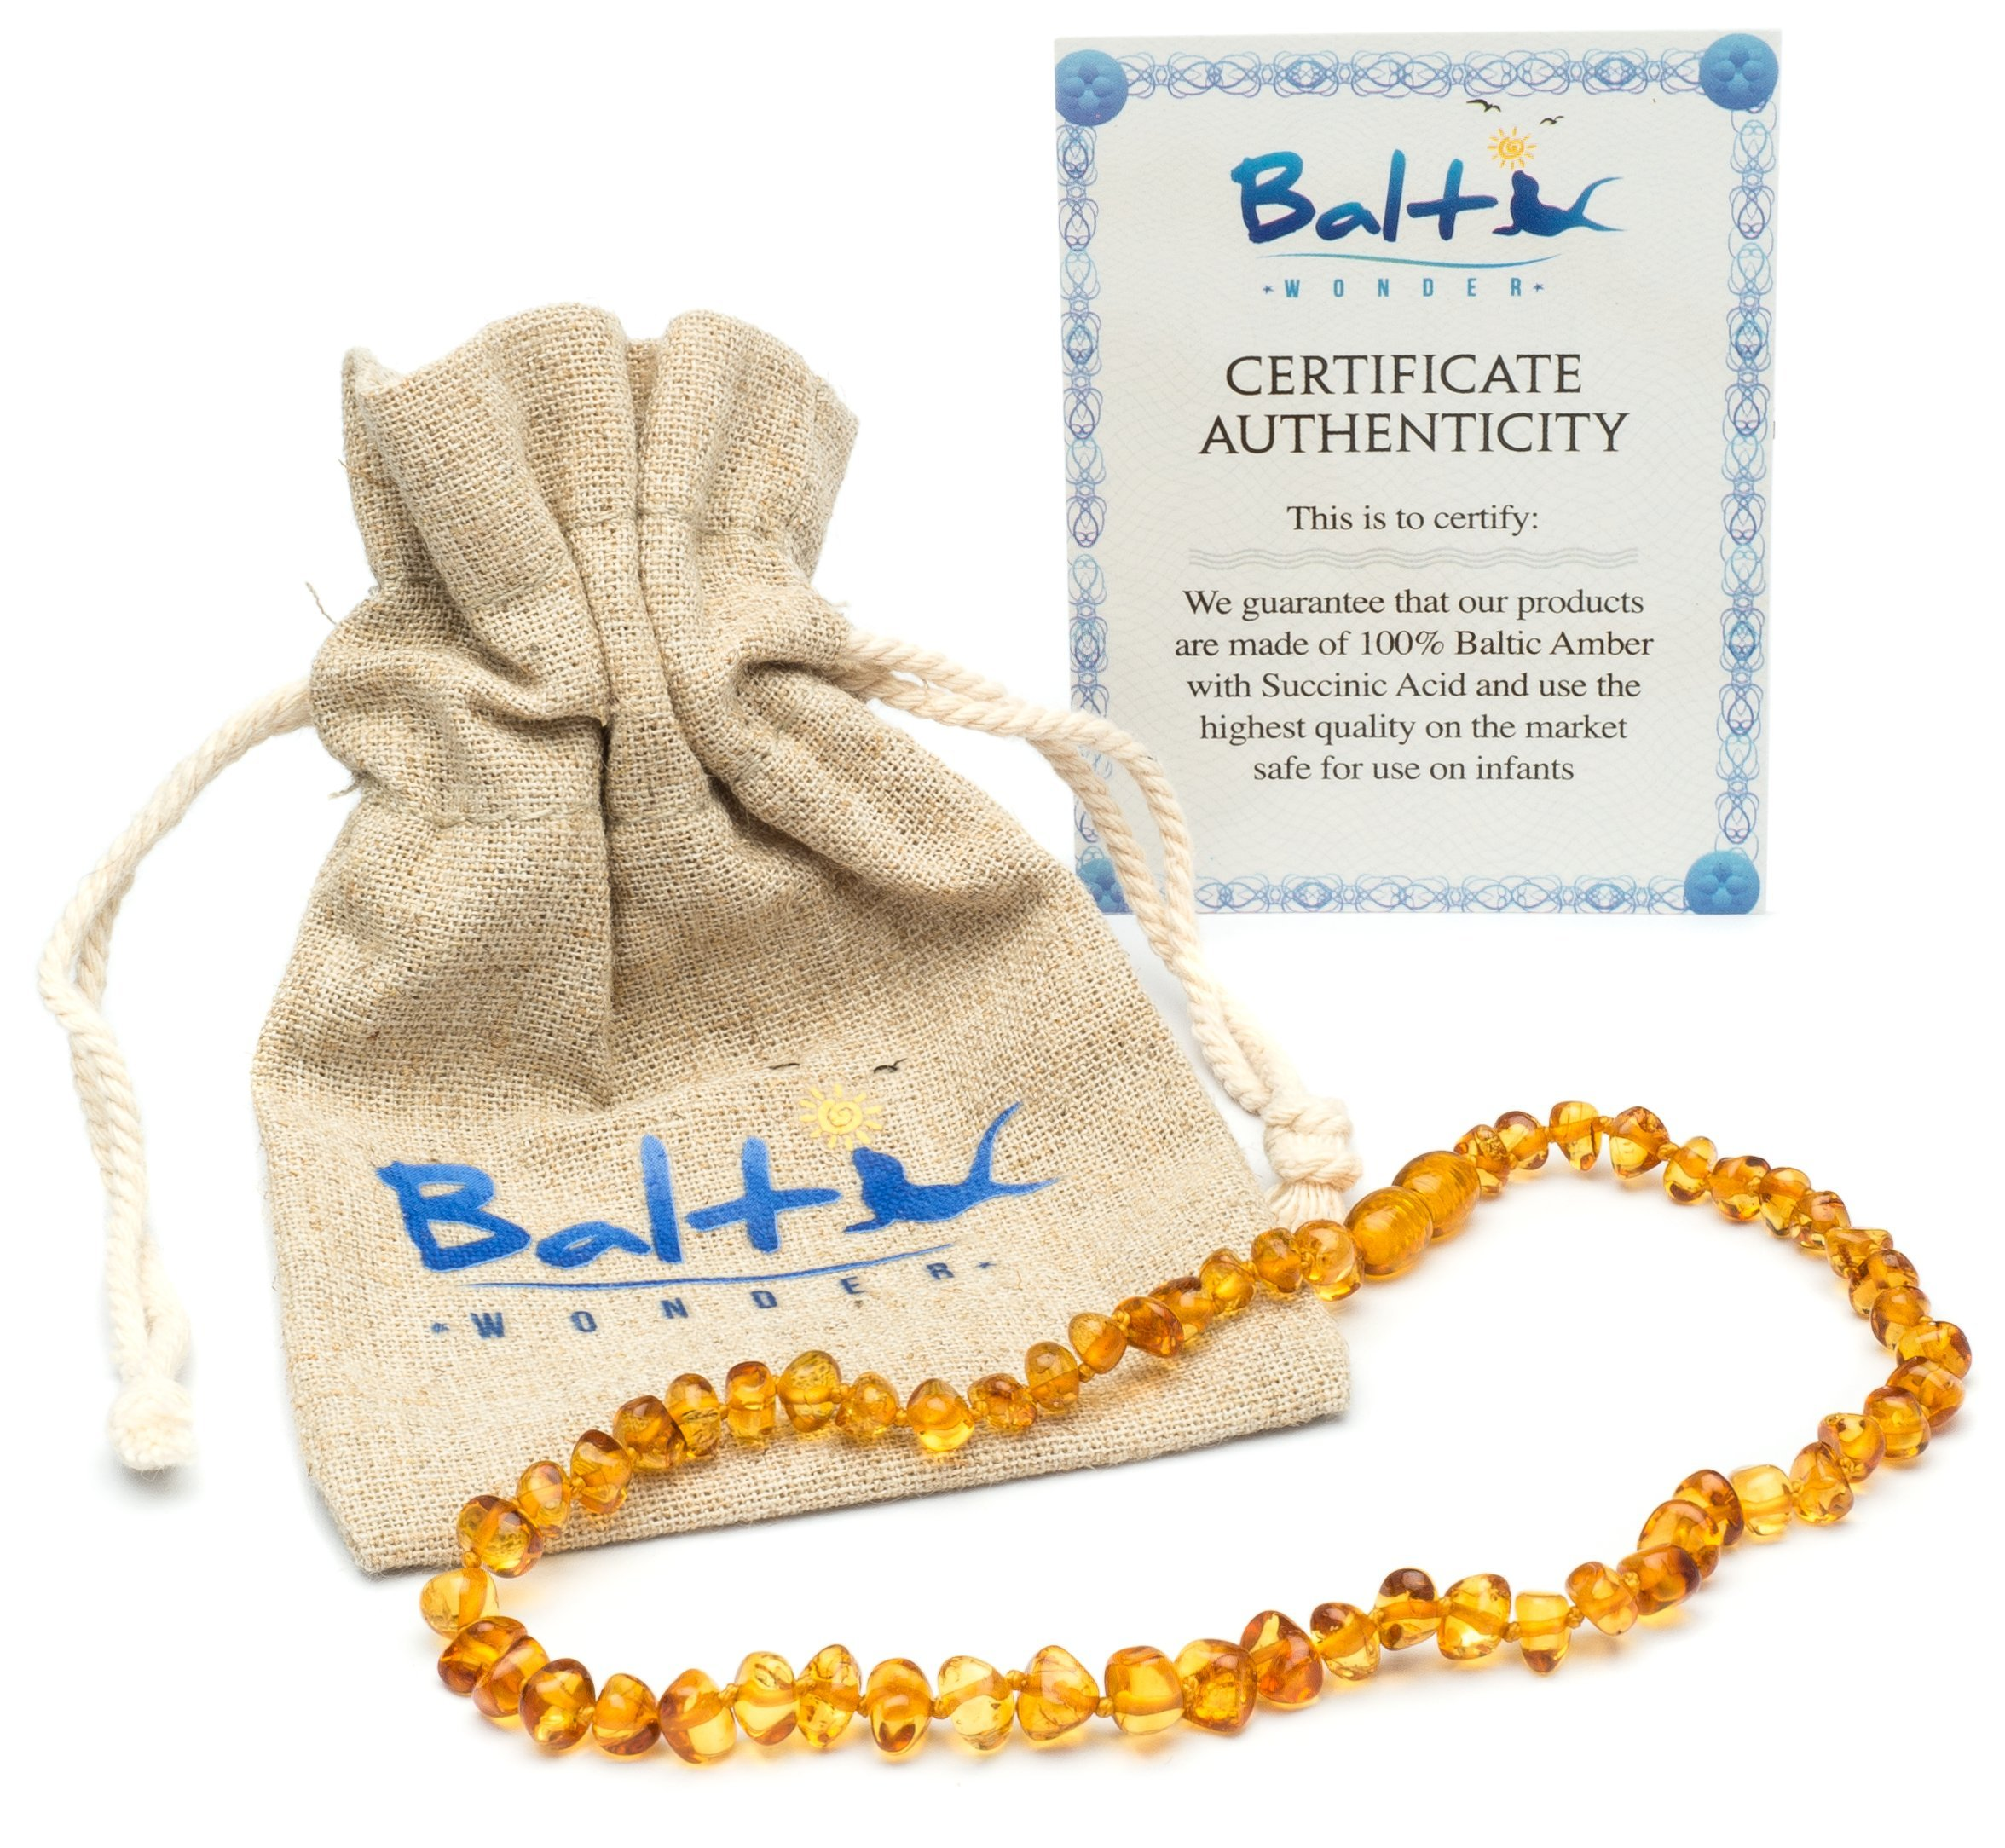 Baltic Amber Teething Necklace For Babies (Unisex) (Honey) - Anti Flammatory, Drooling & Teething Pain Reduce Properties - Natural Certificated Oval Baltic Jewelry with the Highest Quality Guaranteed by Baltic Wonder